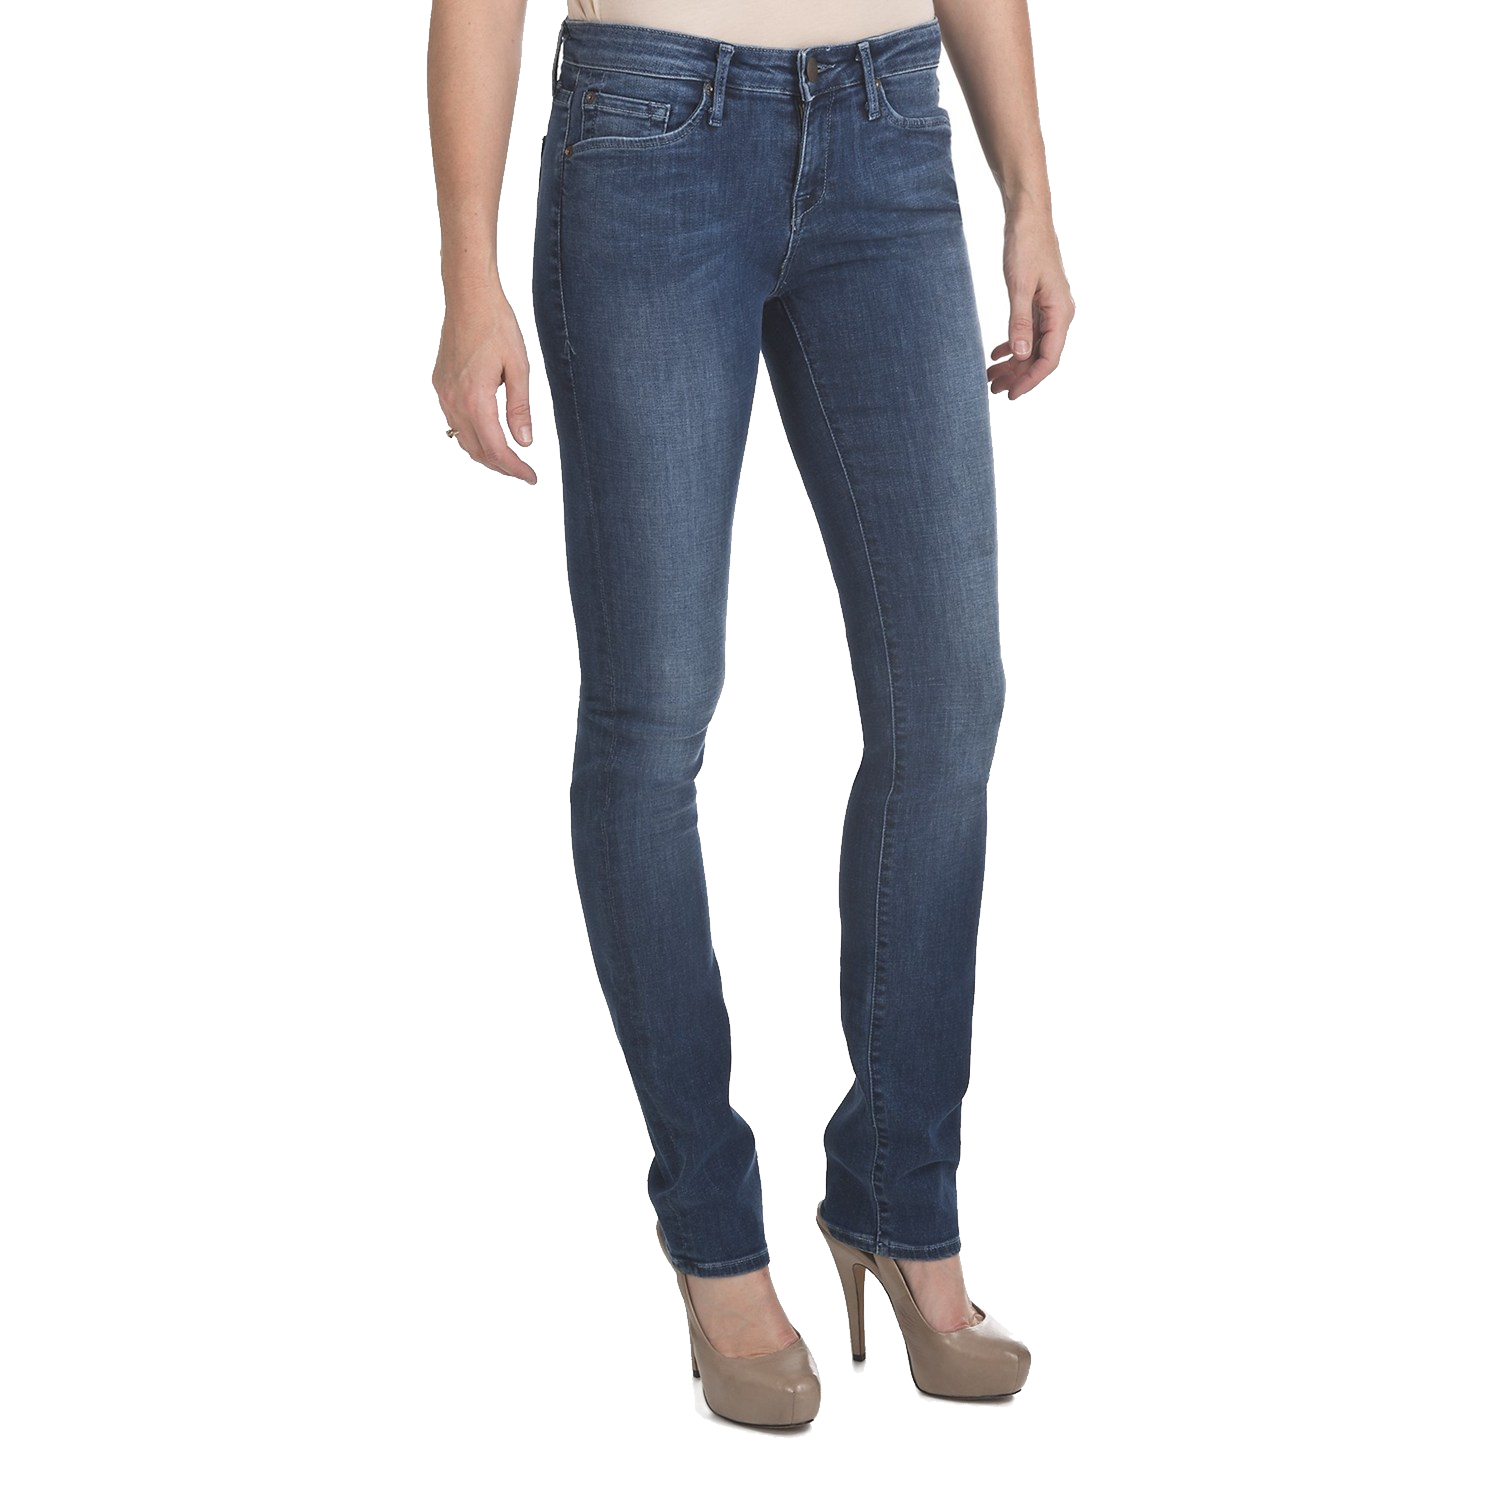 Women Jeans PNG Image